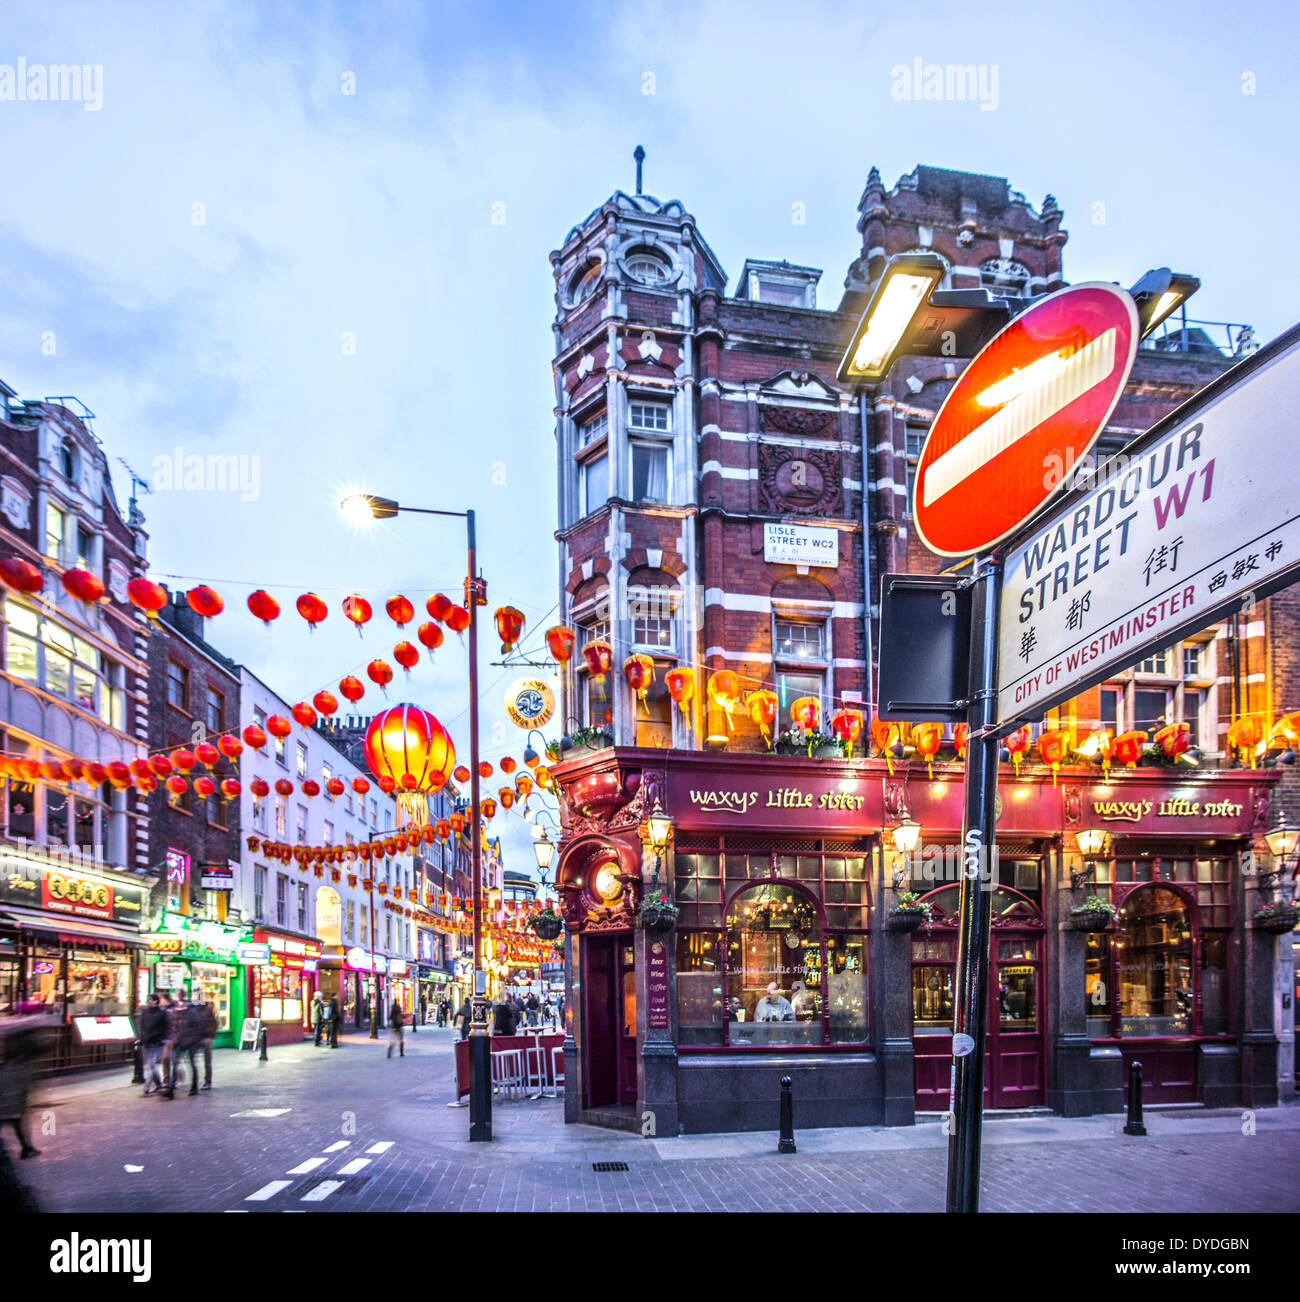 Wardour Street with decorations for the Chinese New Year. - Stock Image